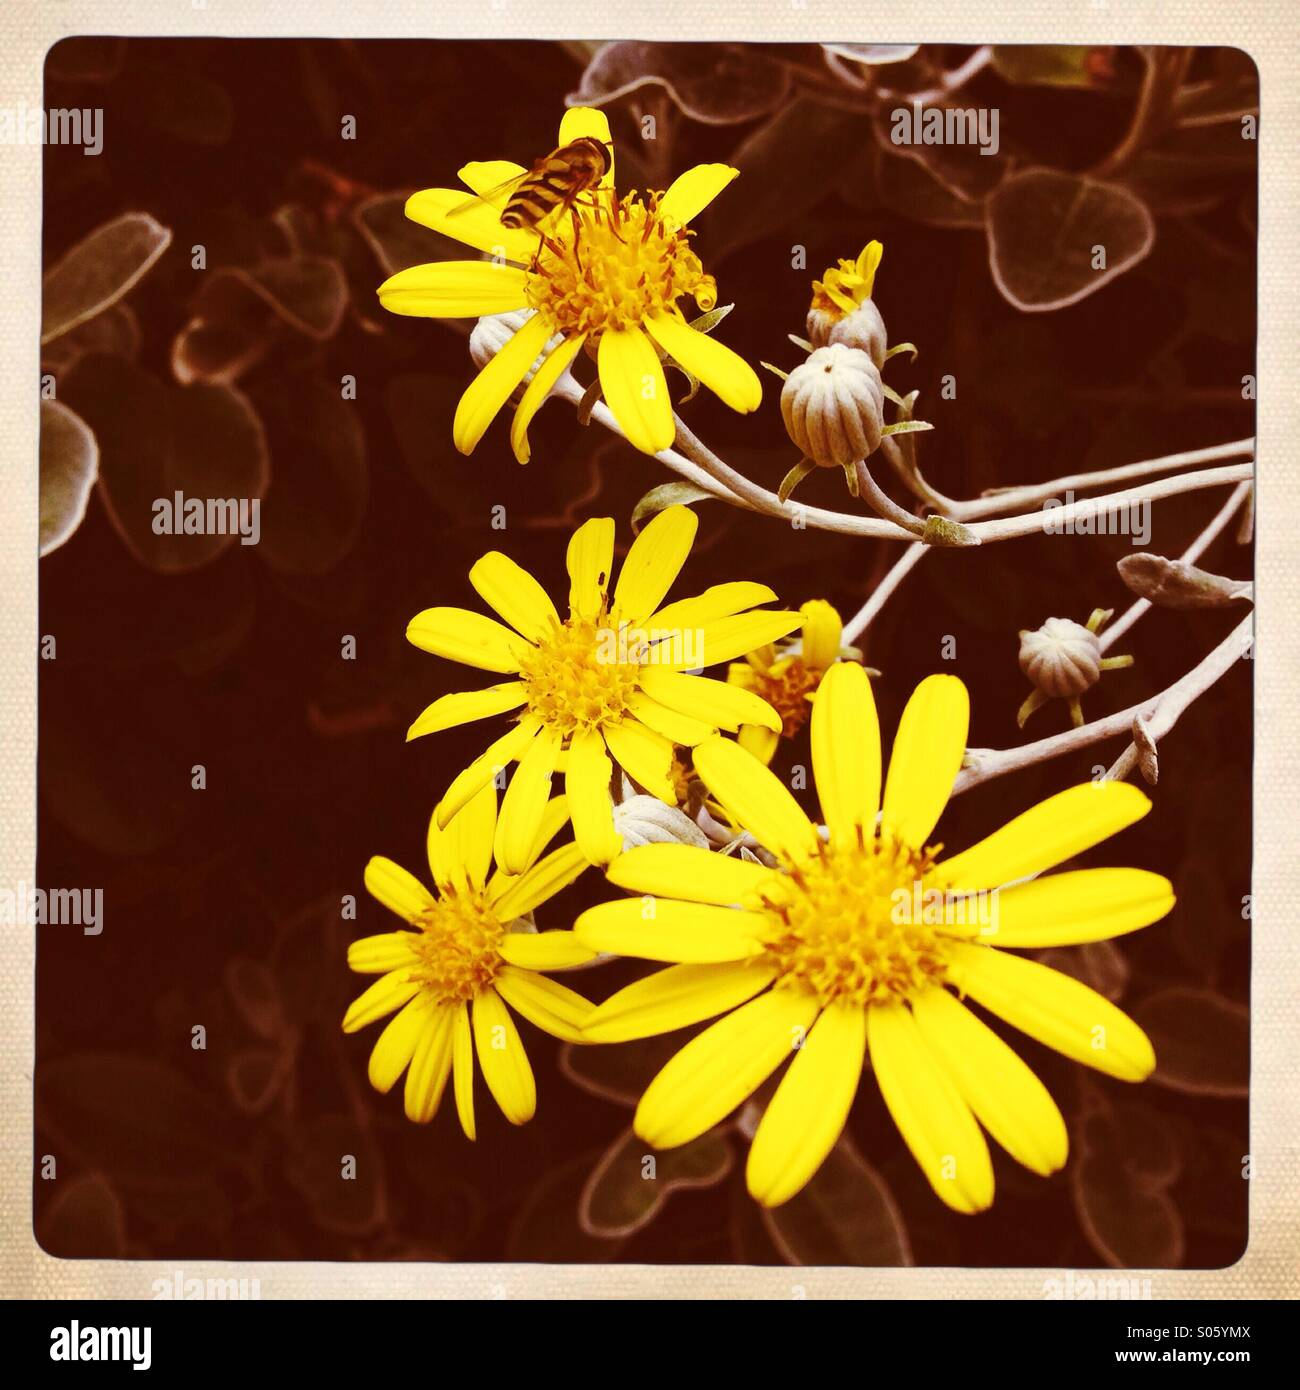 Yellow fly stockfotos yellow fly bilder alamy for Kleine fliegen blumen